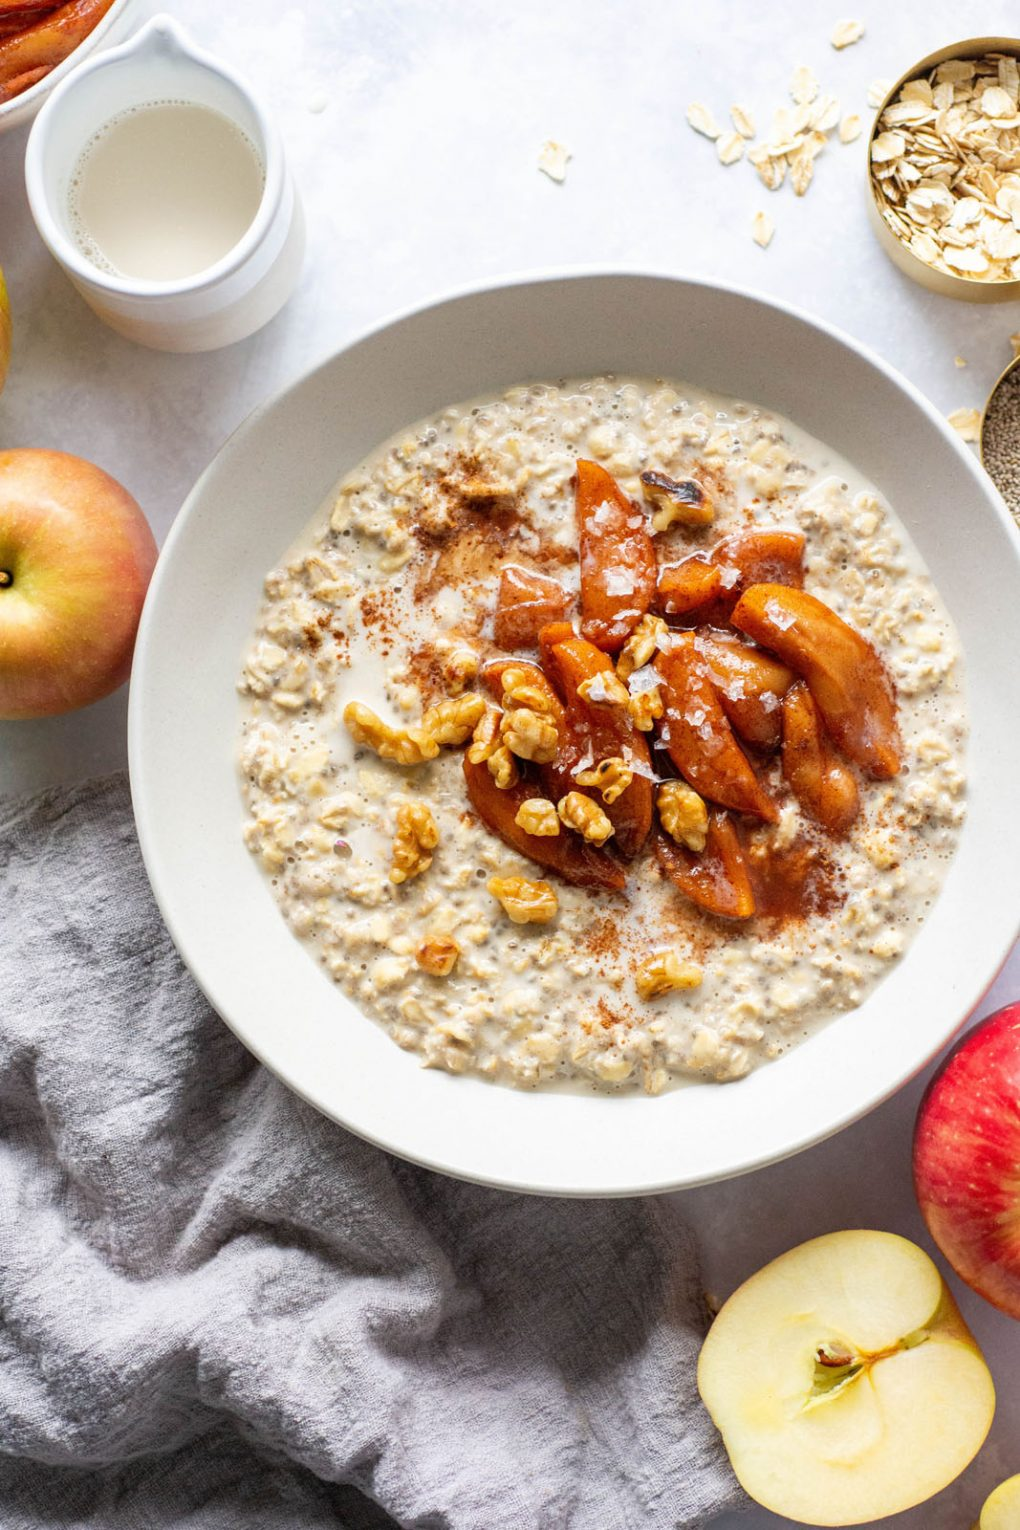 Large white bowl of salted caramel apple overnight oats topped with a big scoop of baked cinnamon apples, walnuts, and flaky sea salt. Bowl is on a light background surounded by cut apples, and bits of walnuts.